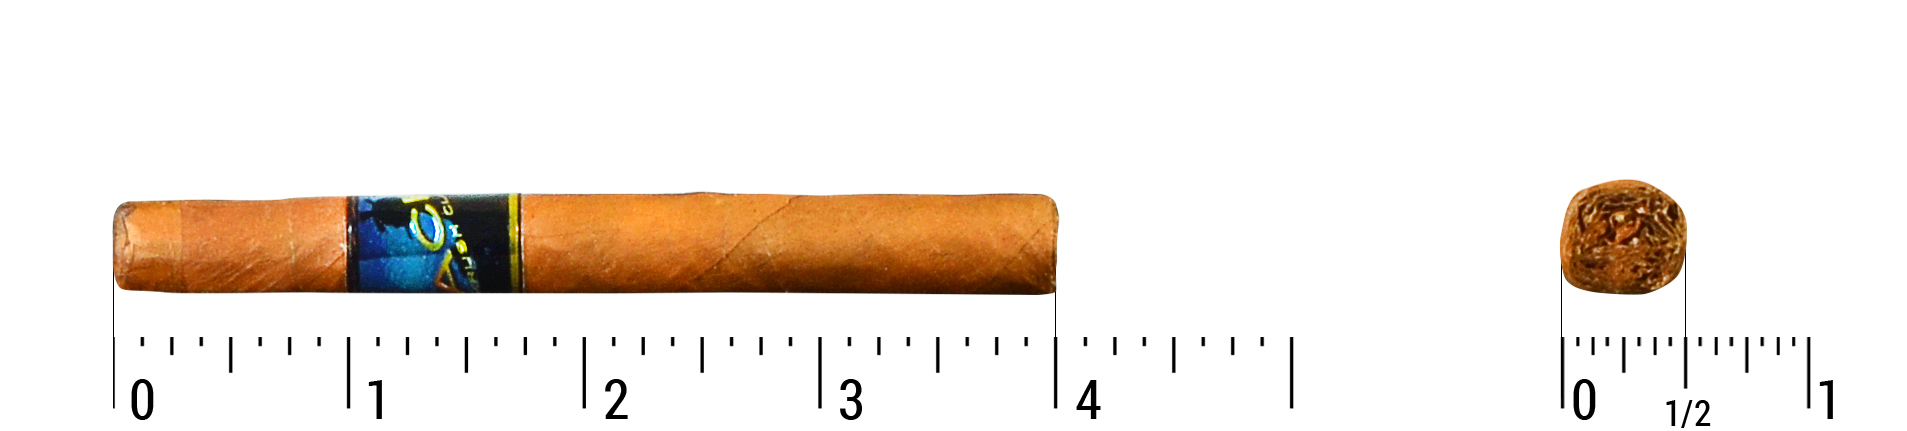 Acid Krush Blue Connecticut Single Cigar Size